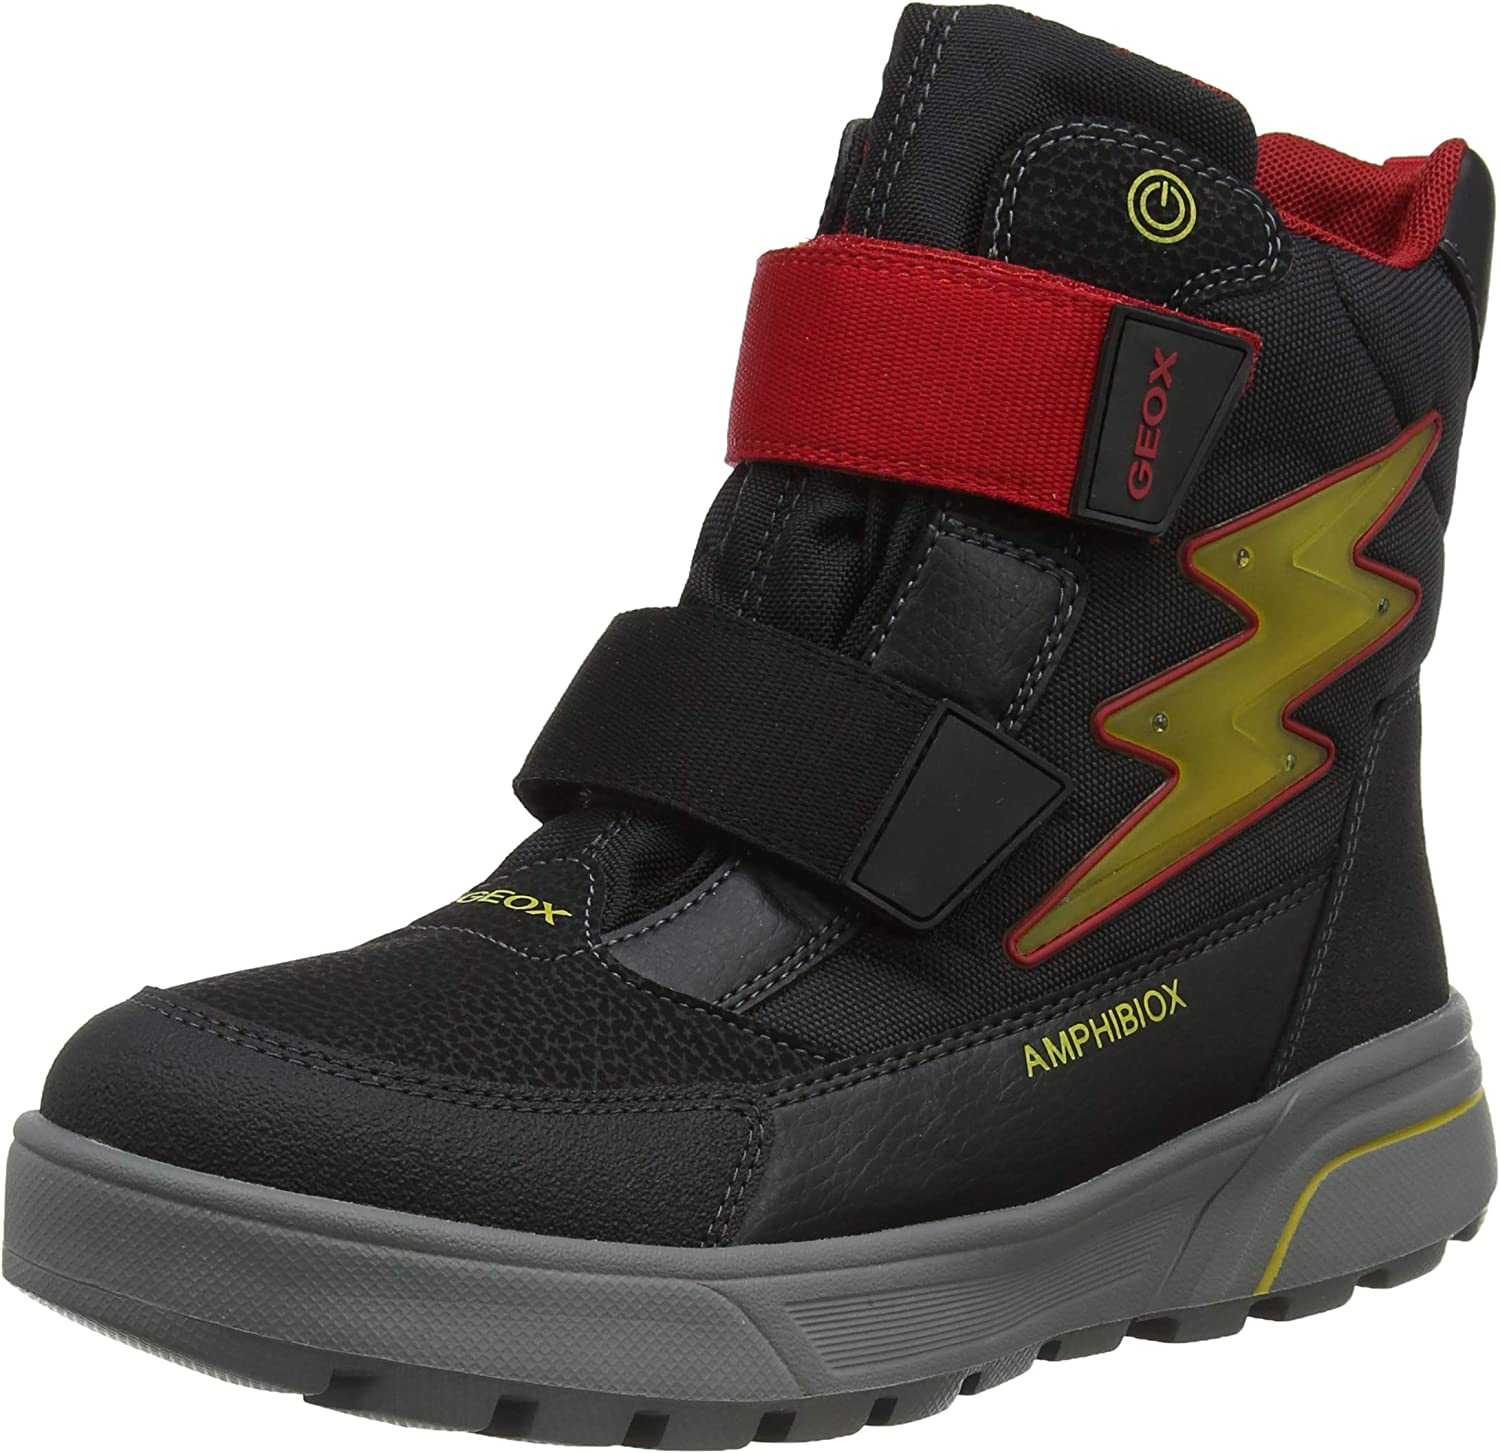 Jadeo preocupación Humedal  Geox Boy's J Sveggen B ABX C Snow Boots: Amazon.co.uk: Shoes & Bags